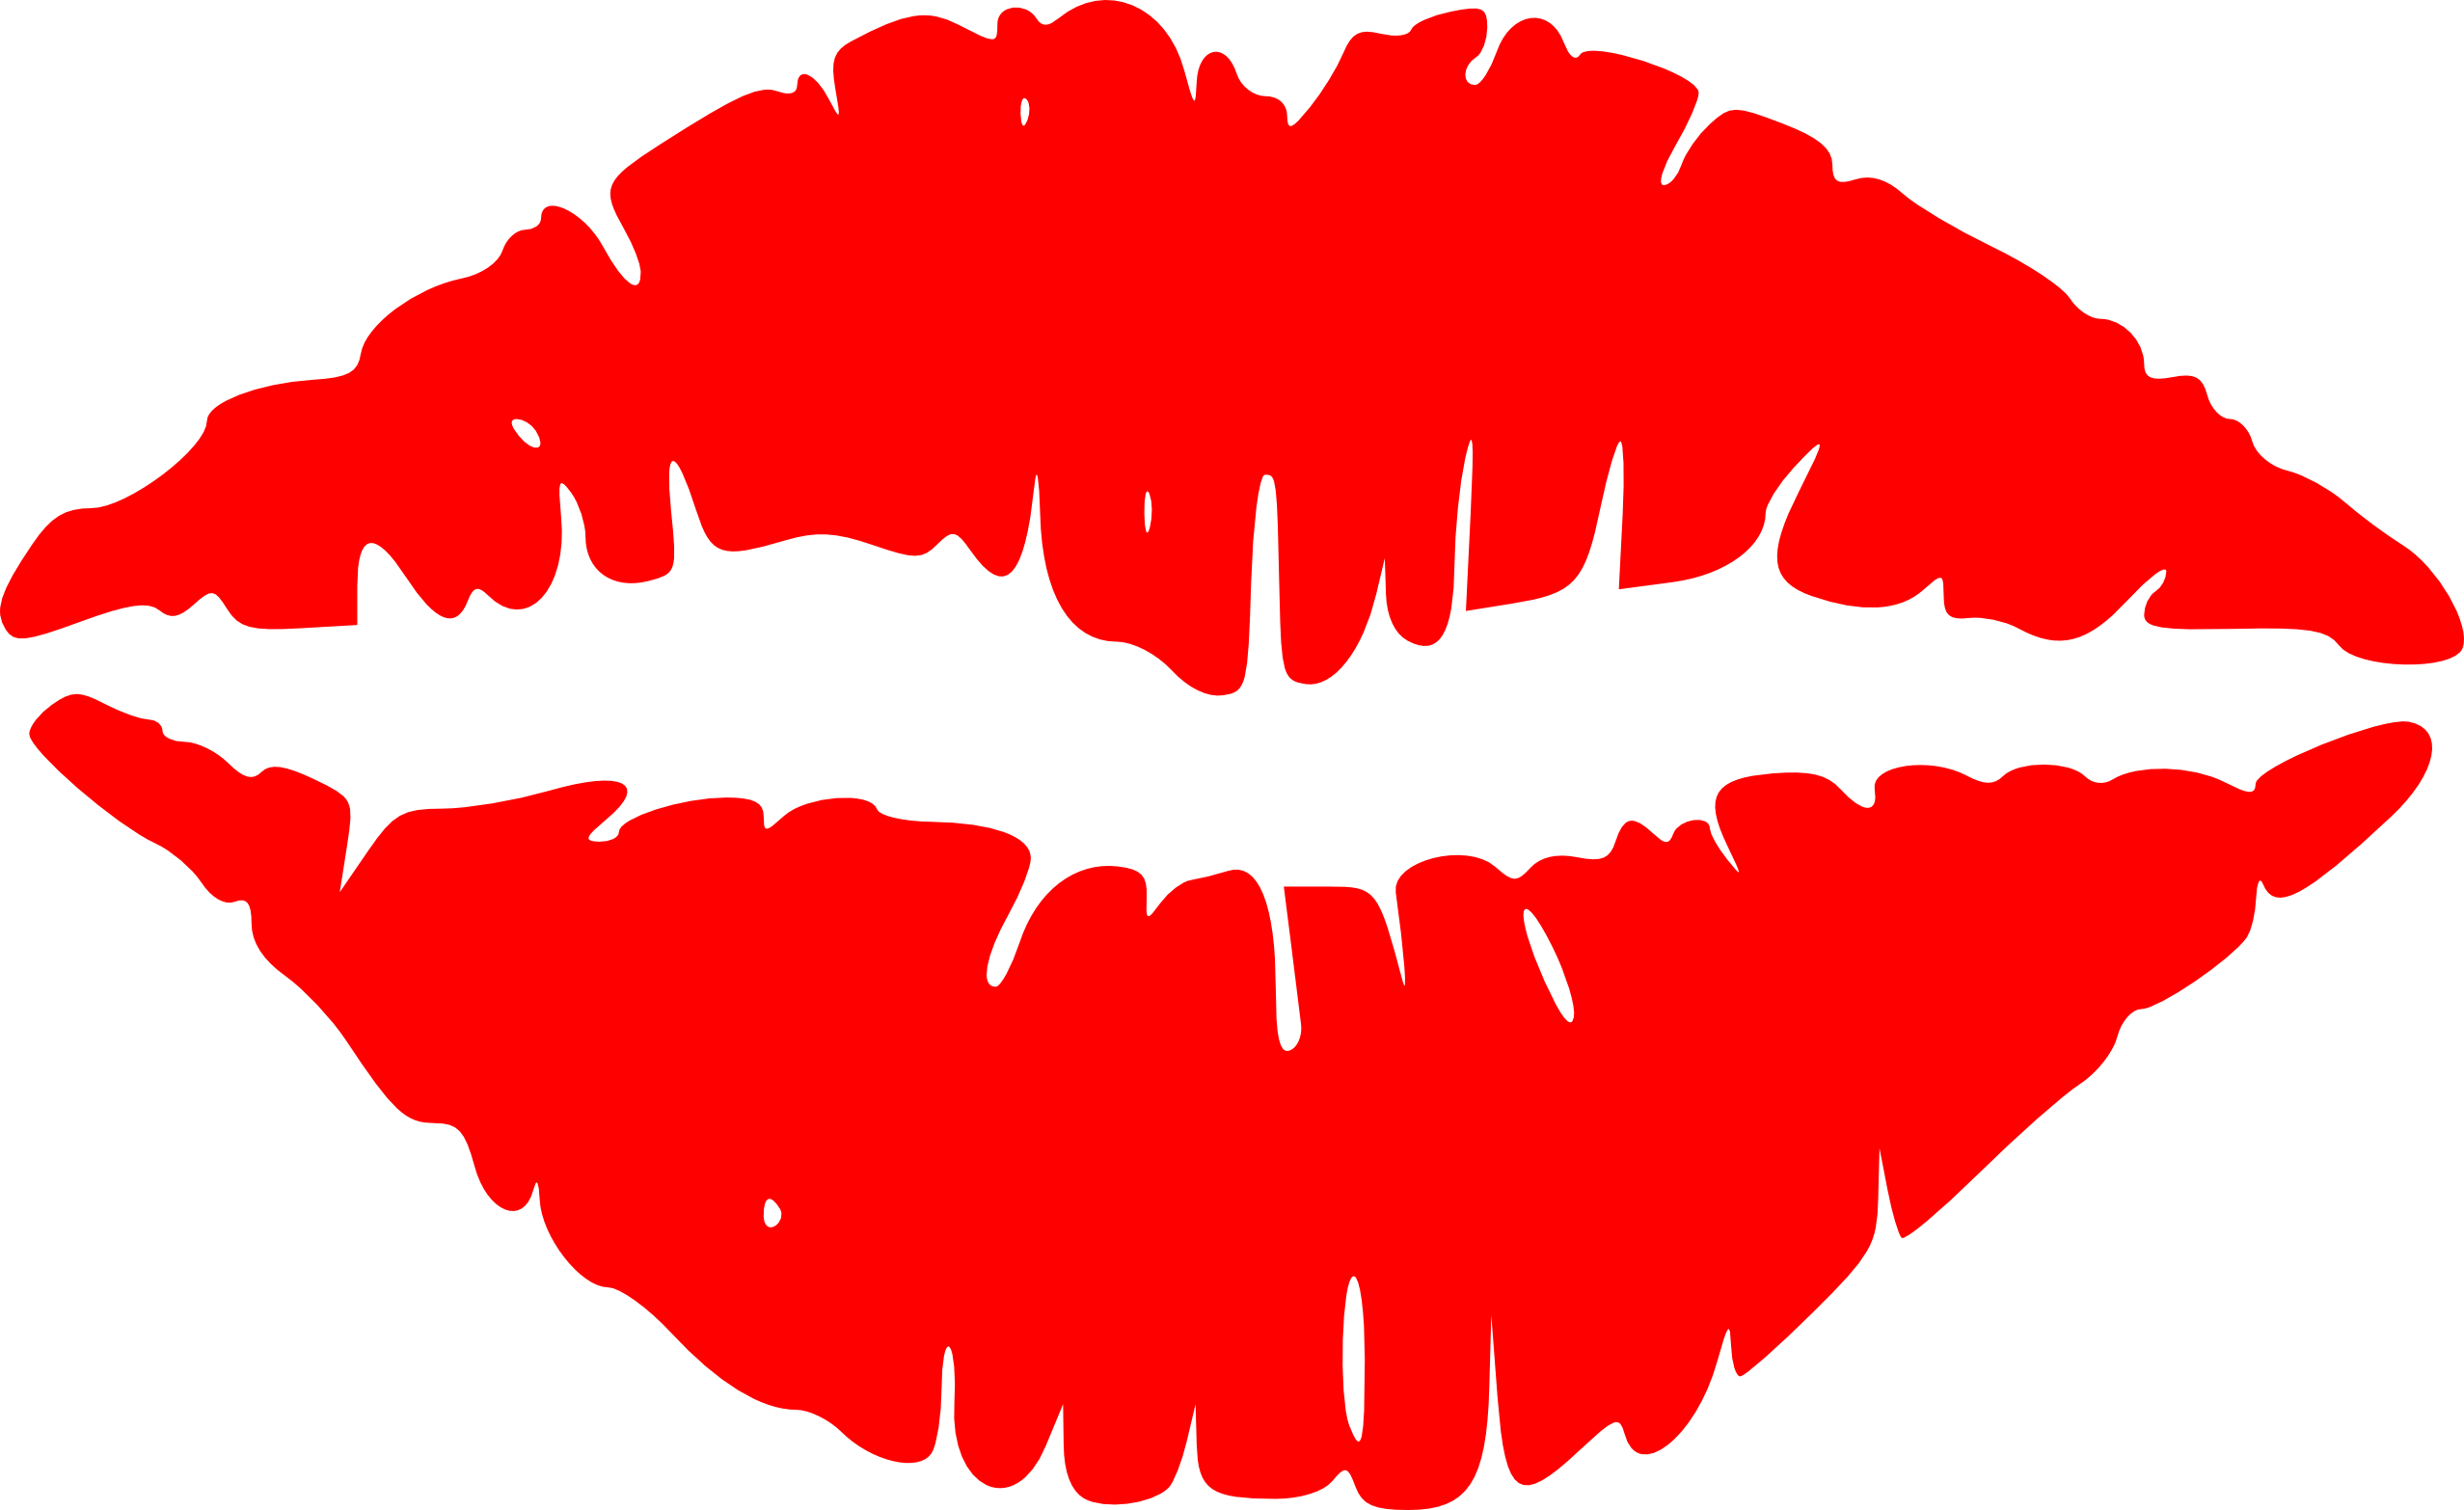 Lips Transparent PNG Image